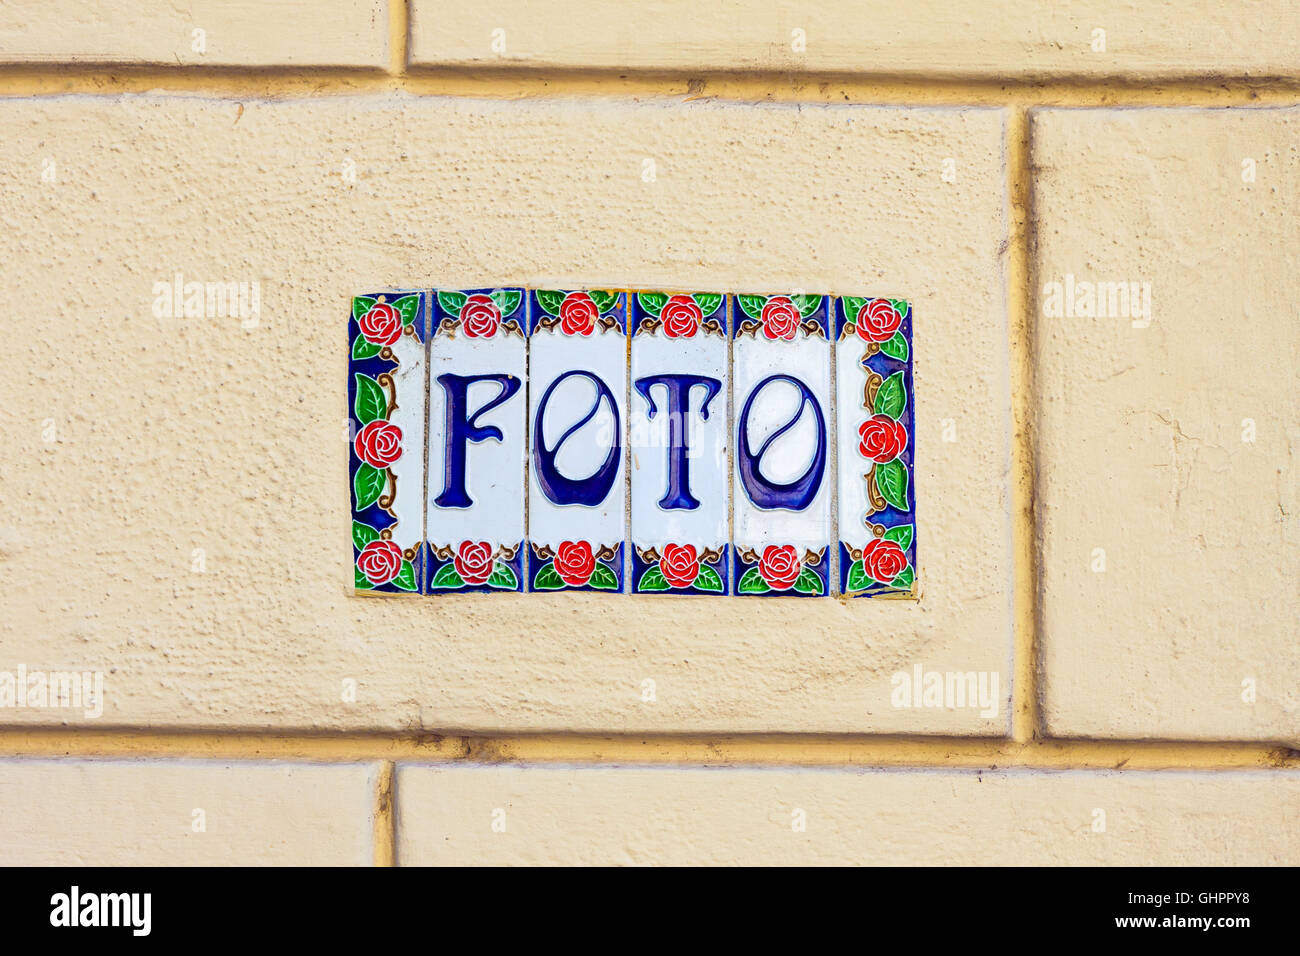 Word foto on decorative ceramic tiles on the wall outdoors - Stock Image